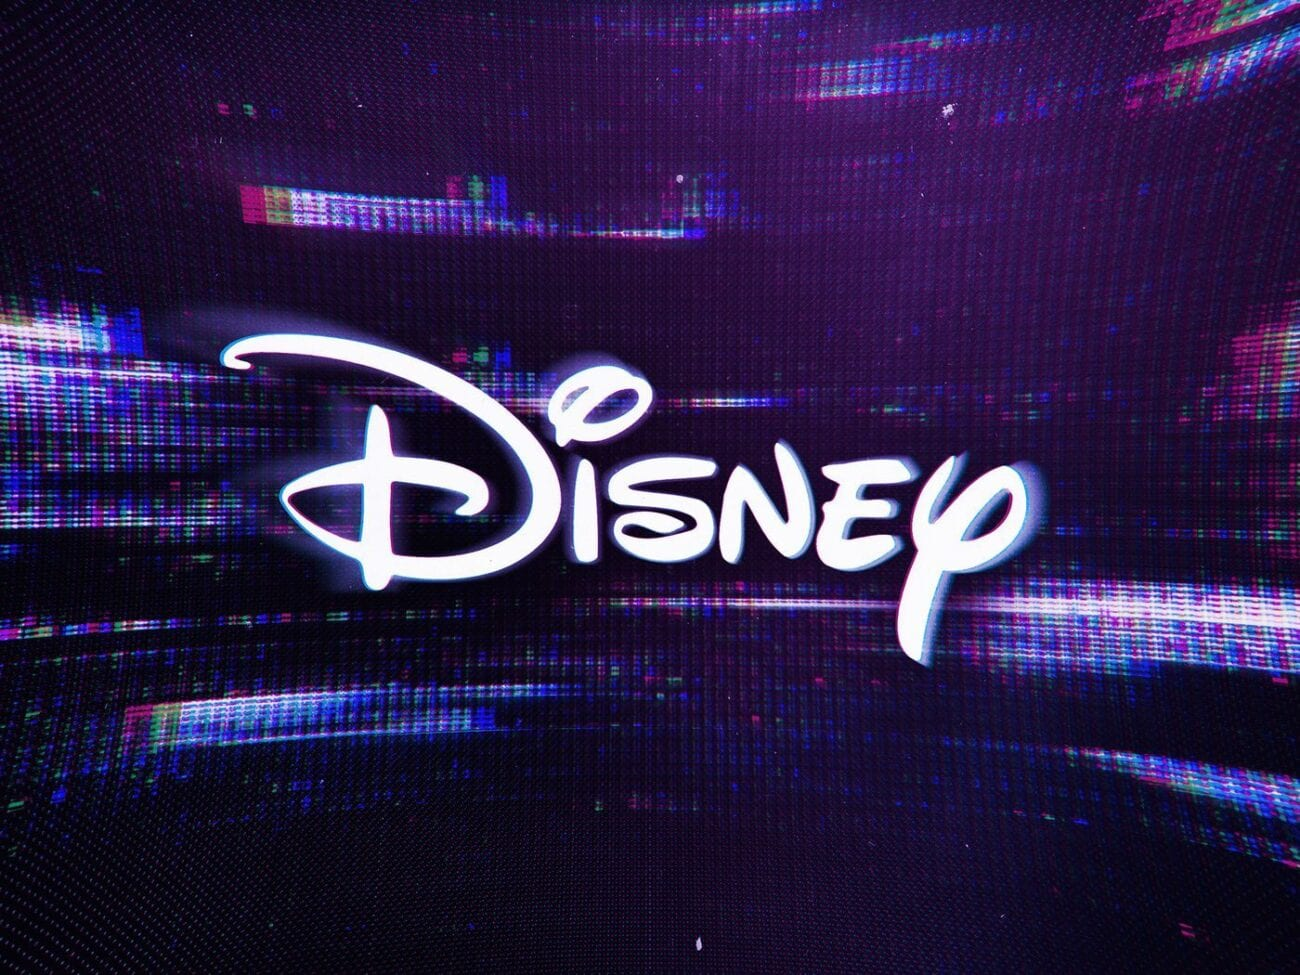 With millions of subscribers around the world today, Disney Plus made a quick and powerful launch. Check out these impressive hacks.